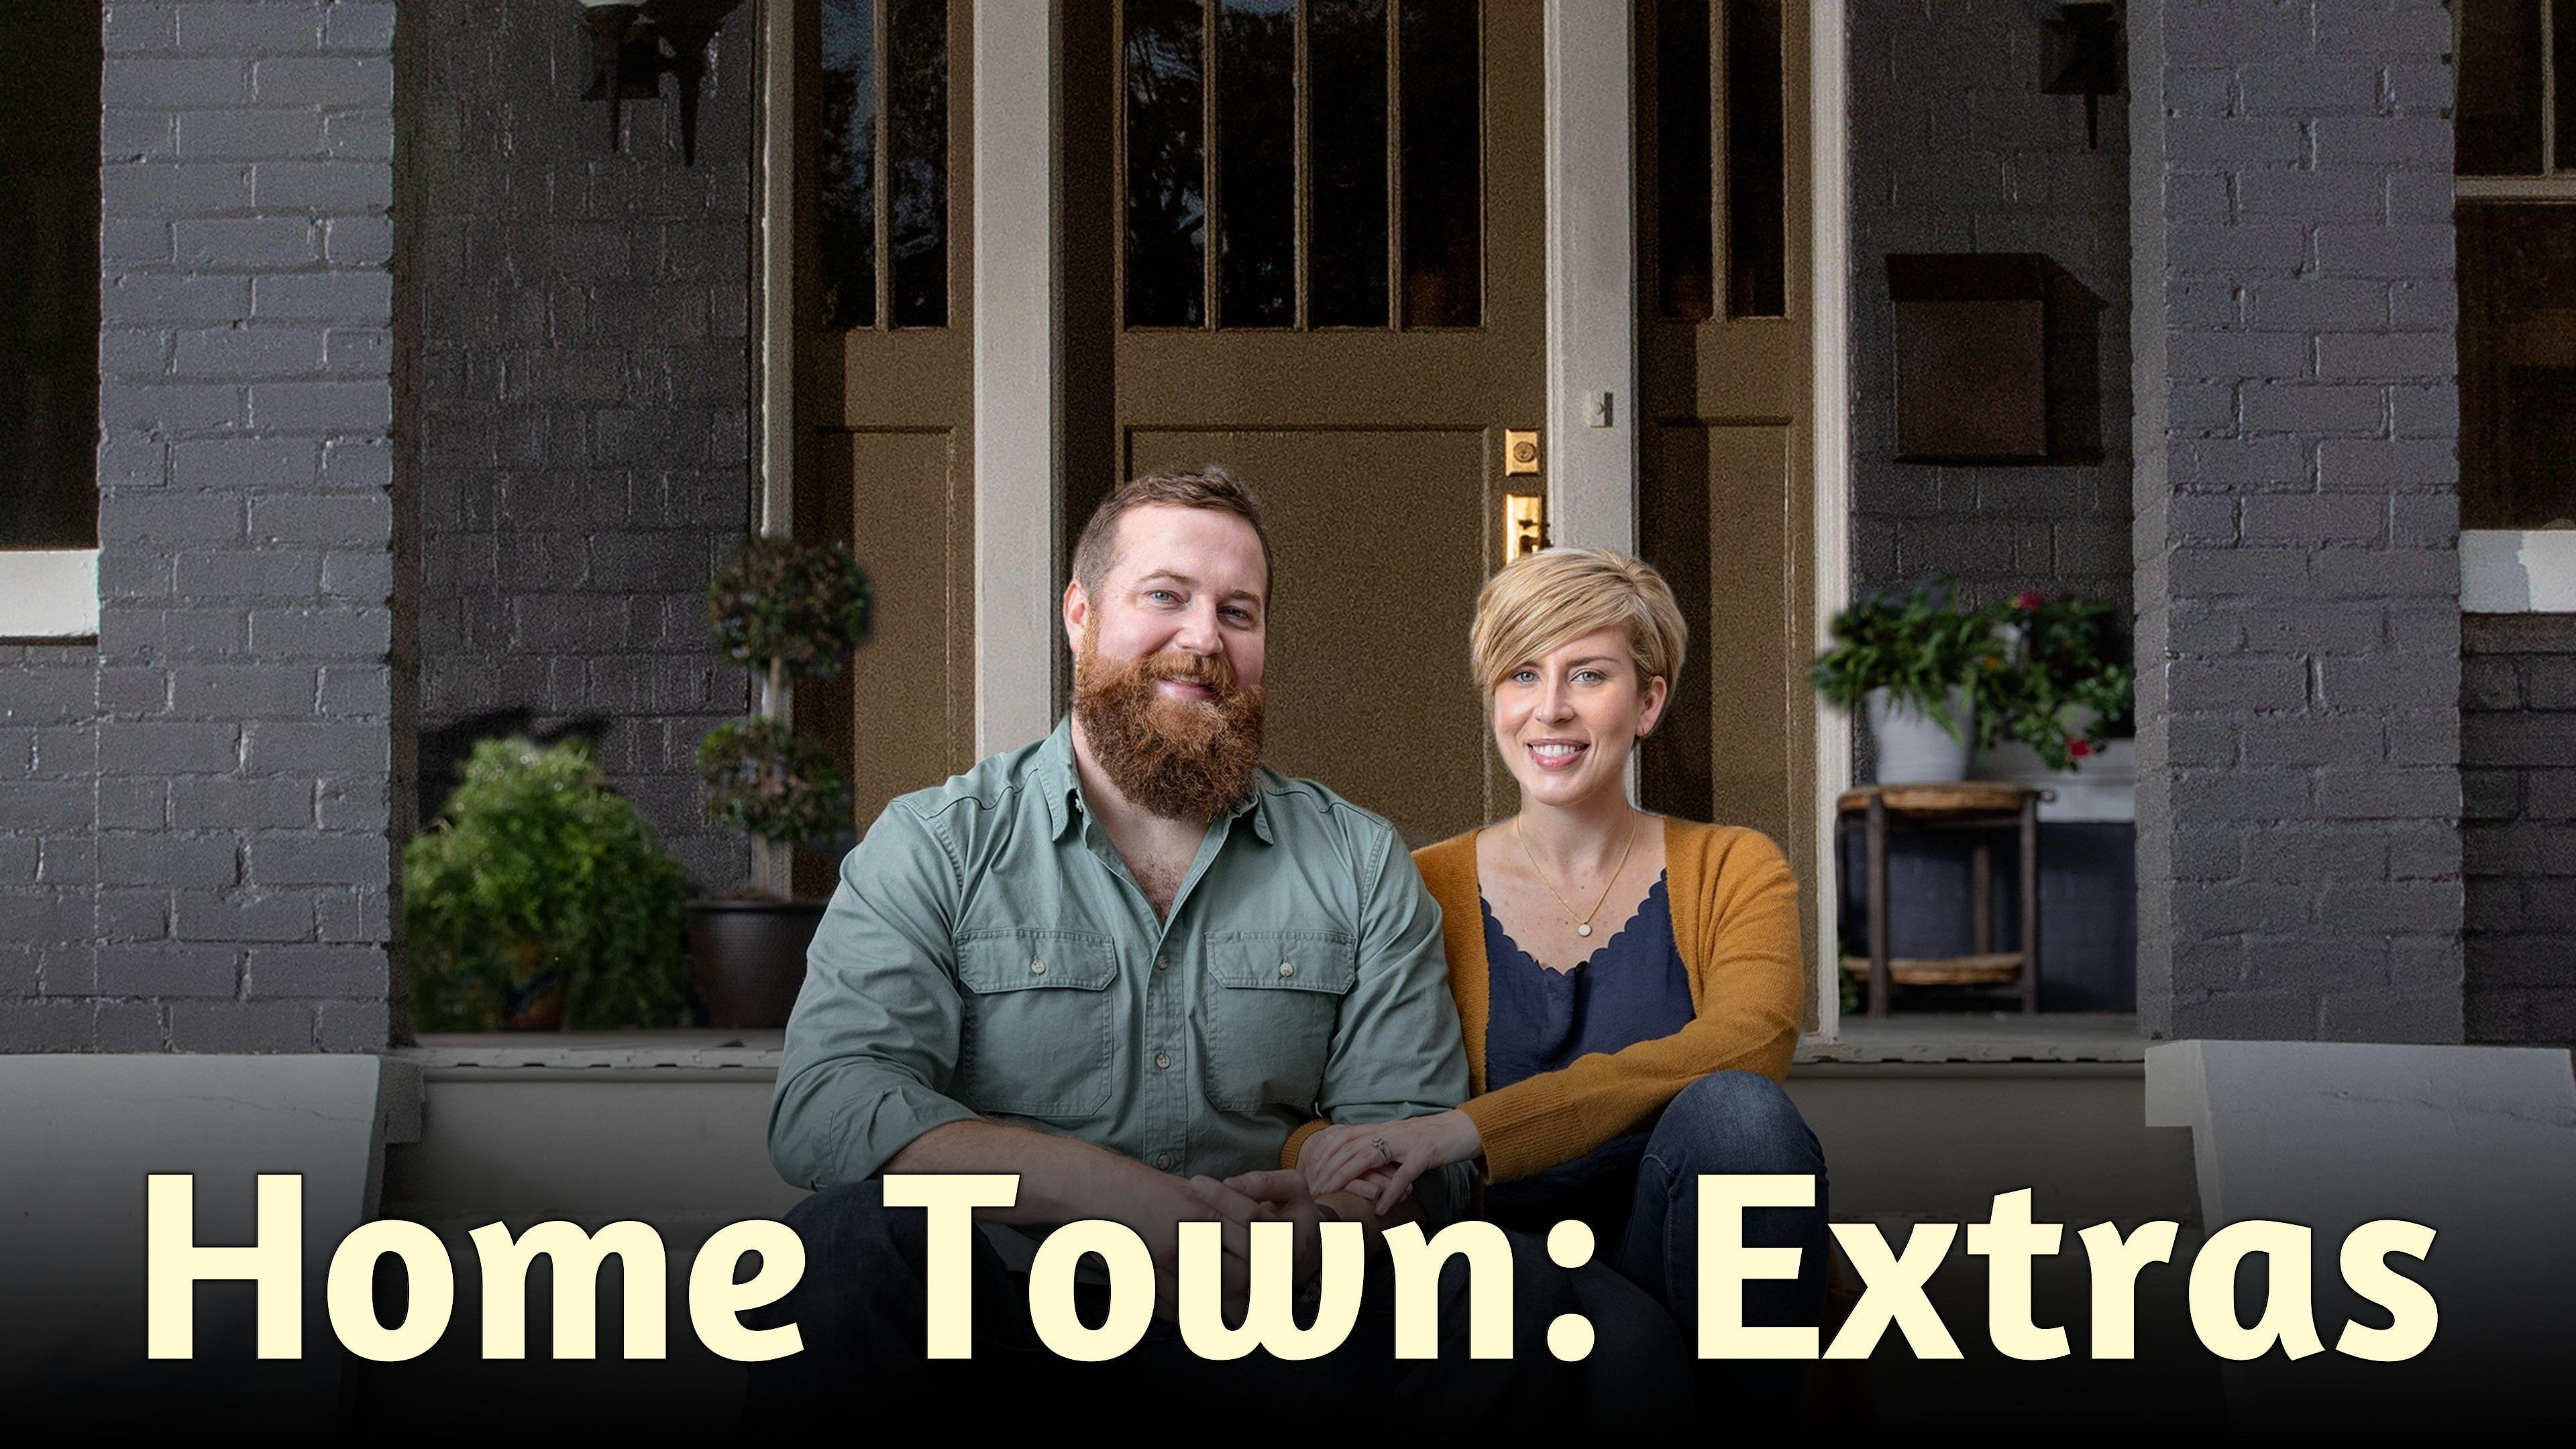 Home Town: Extras